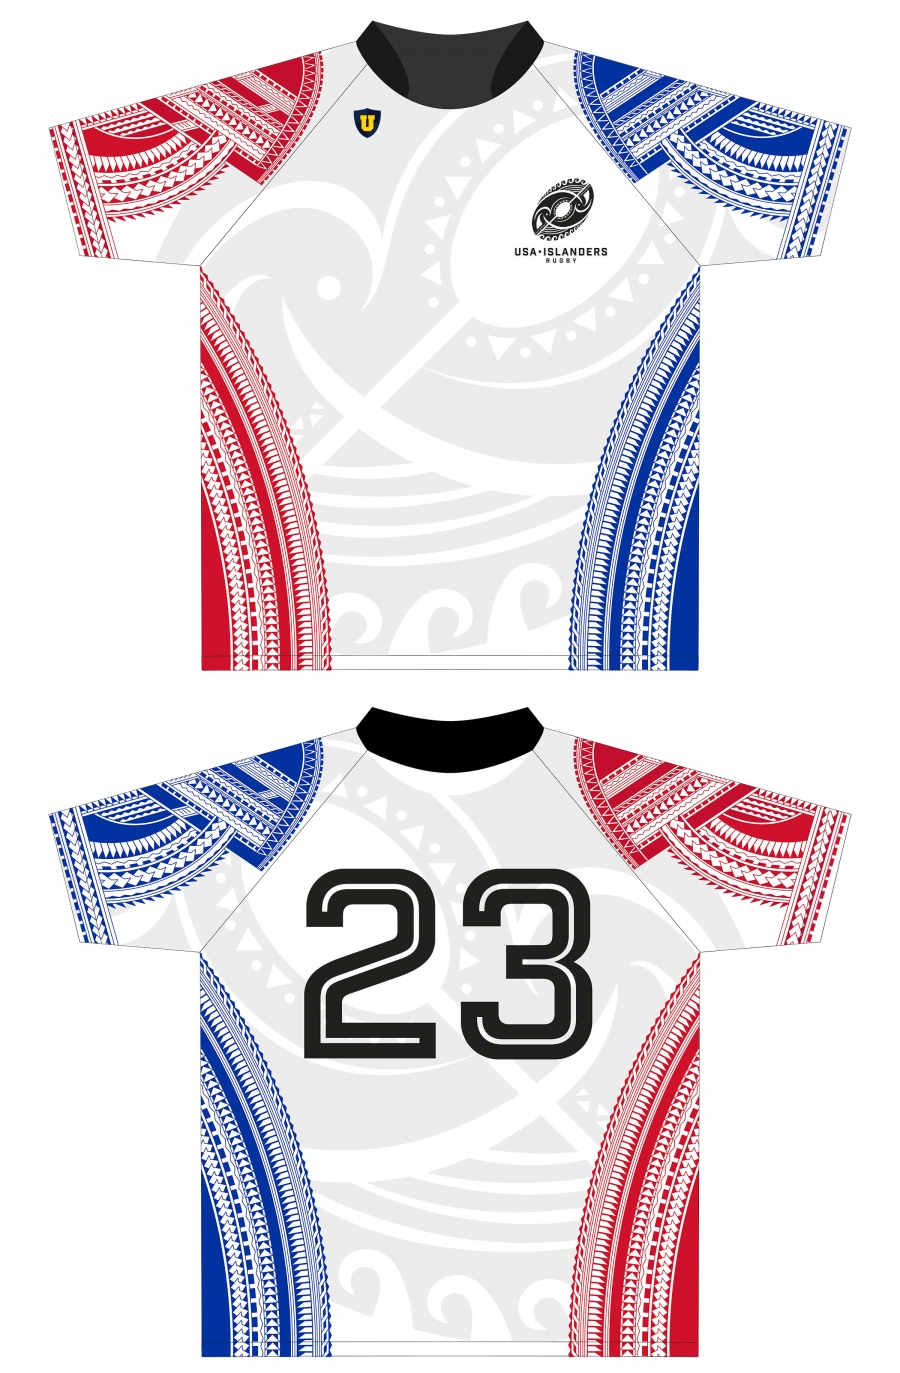 USA Islanders Rugby Team Jerseys